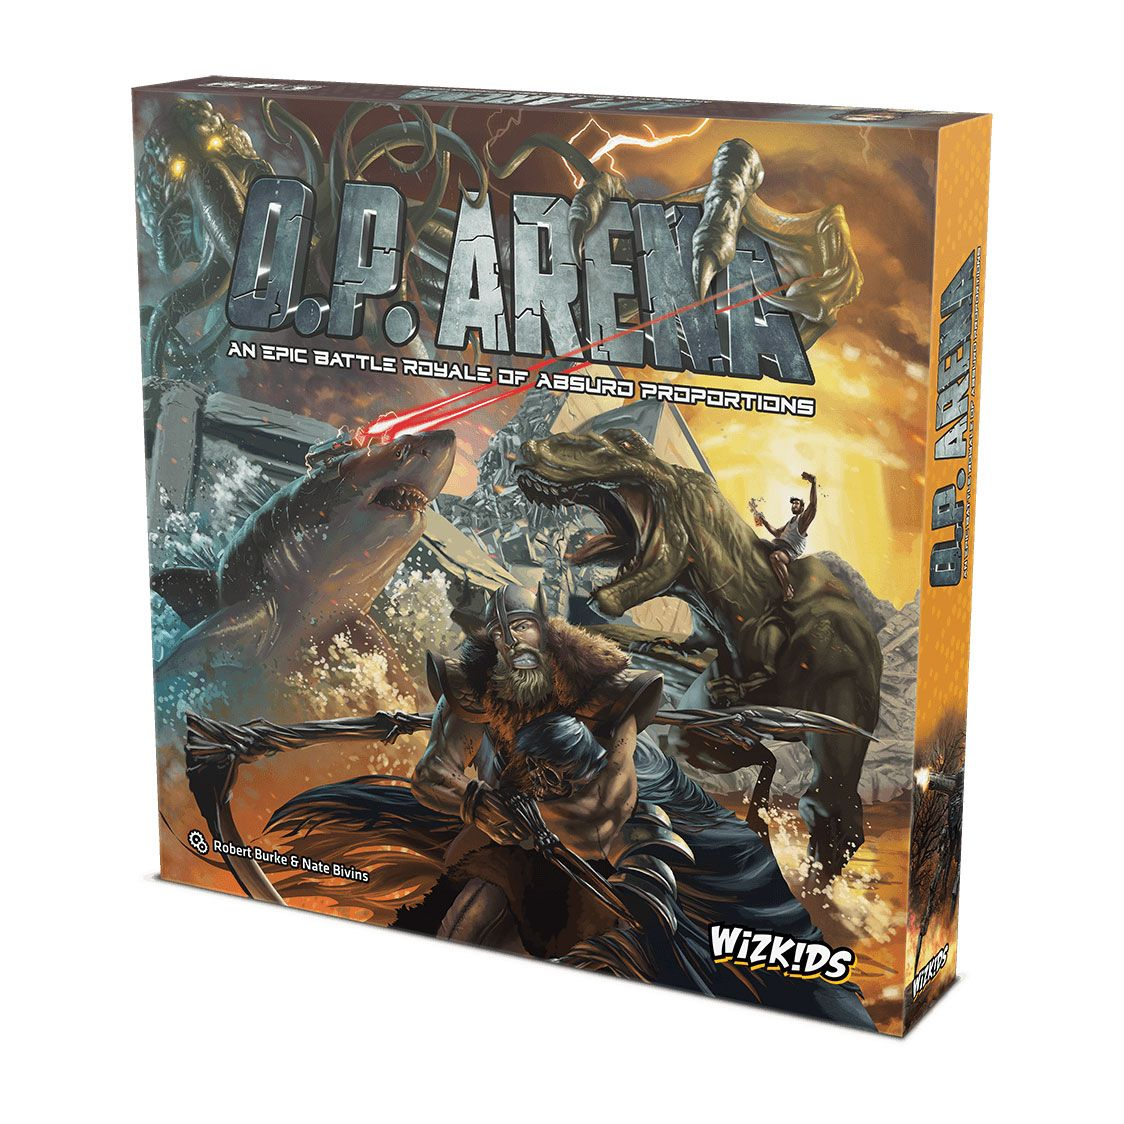 O.P. Arena: An Epic Battle Royale of Absurd Proportions Board Game *English Version*